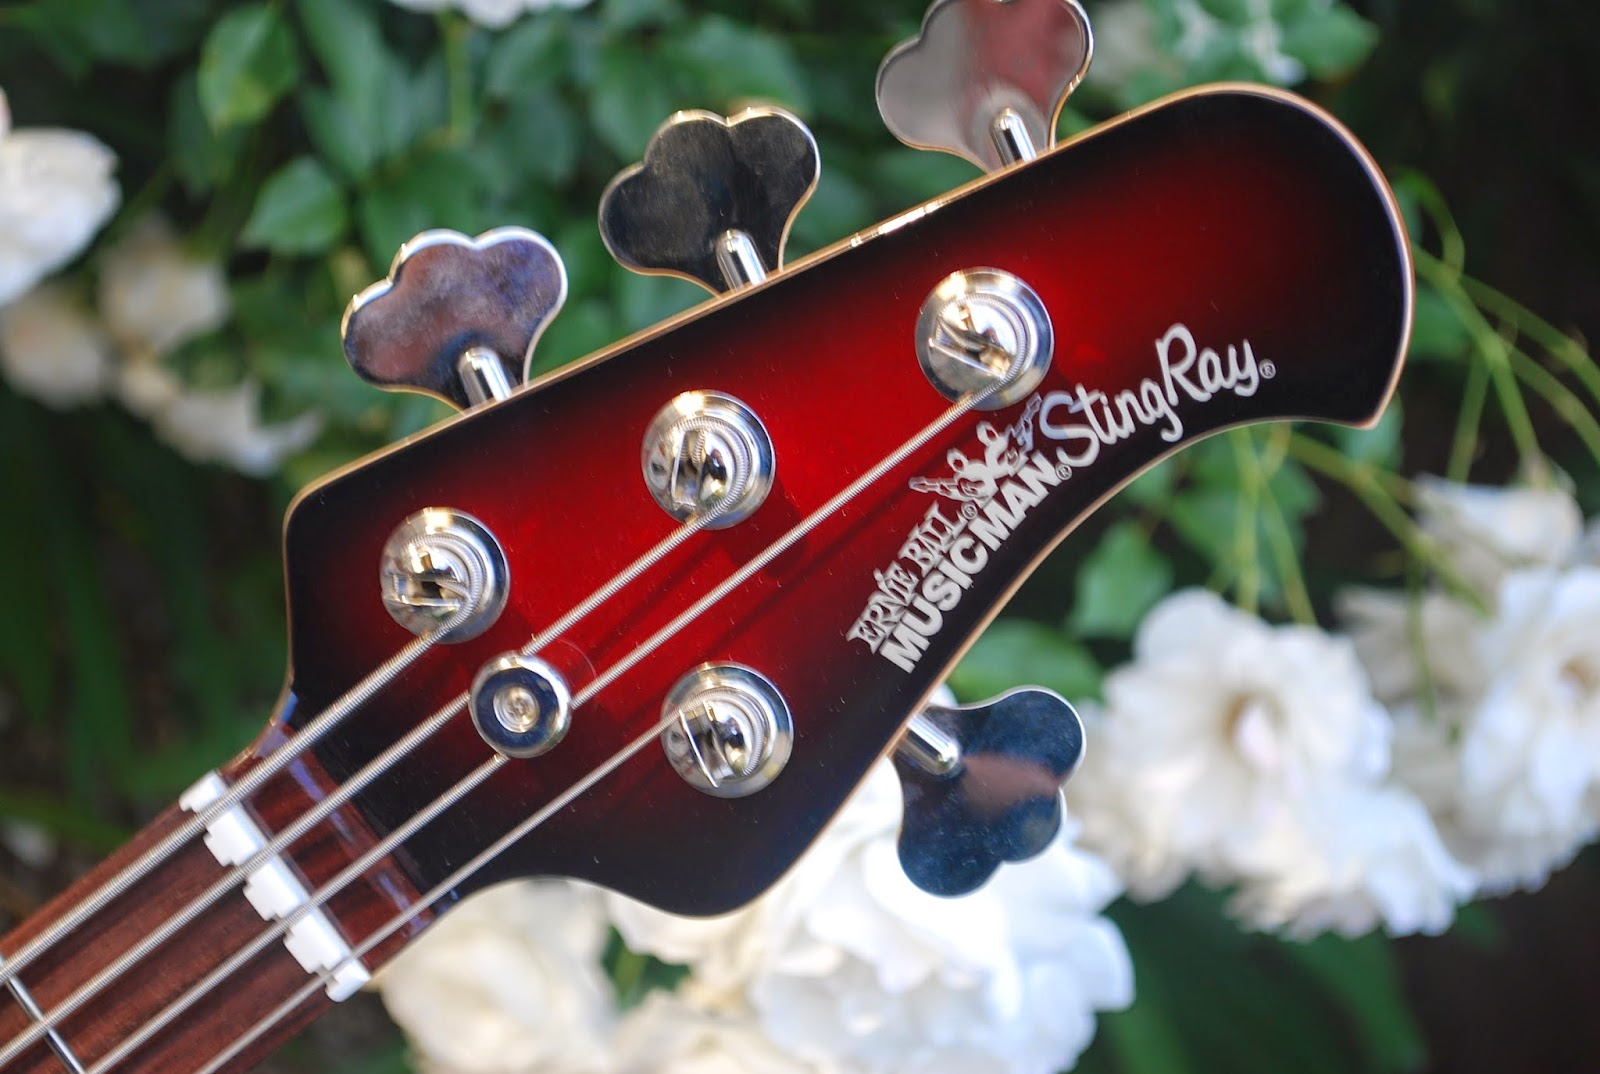 rex and the bass 2011 ernie ball musicman stingray bass review. Black Bedroom Furniture Sets. Home Design Ideas